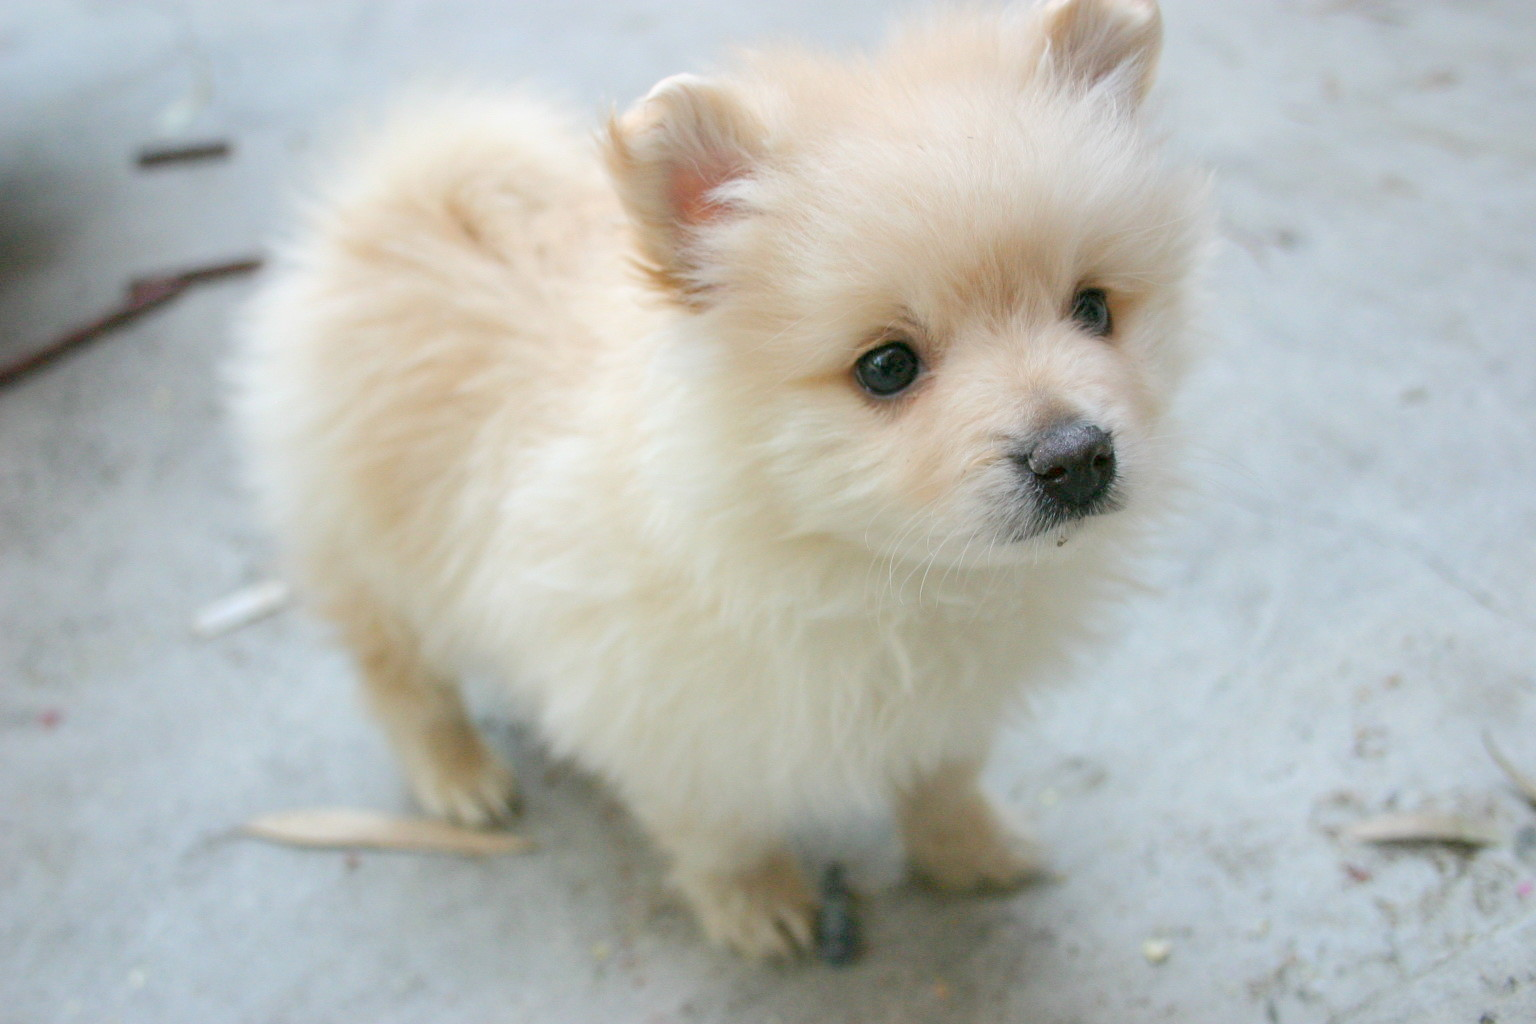 Teacup Pomeranian Husky for sale